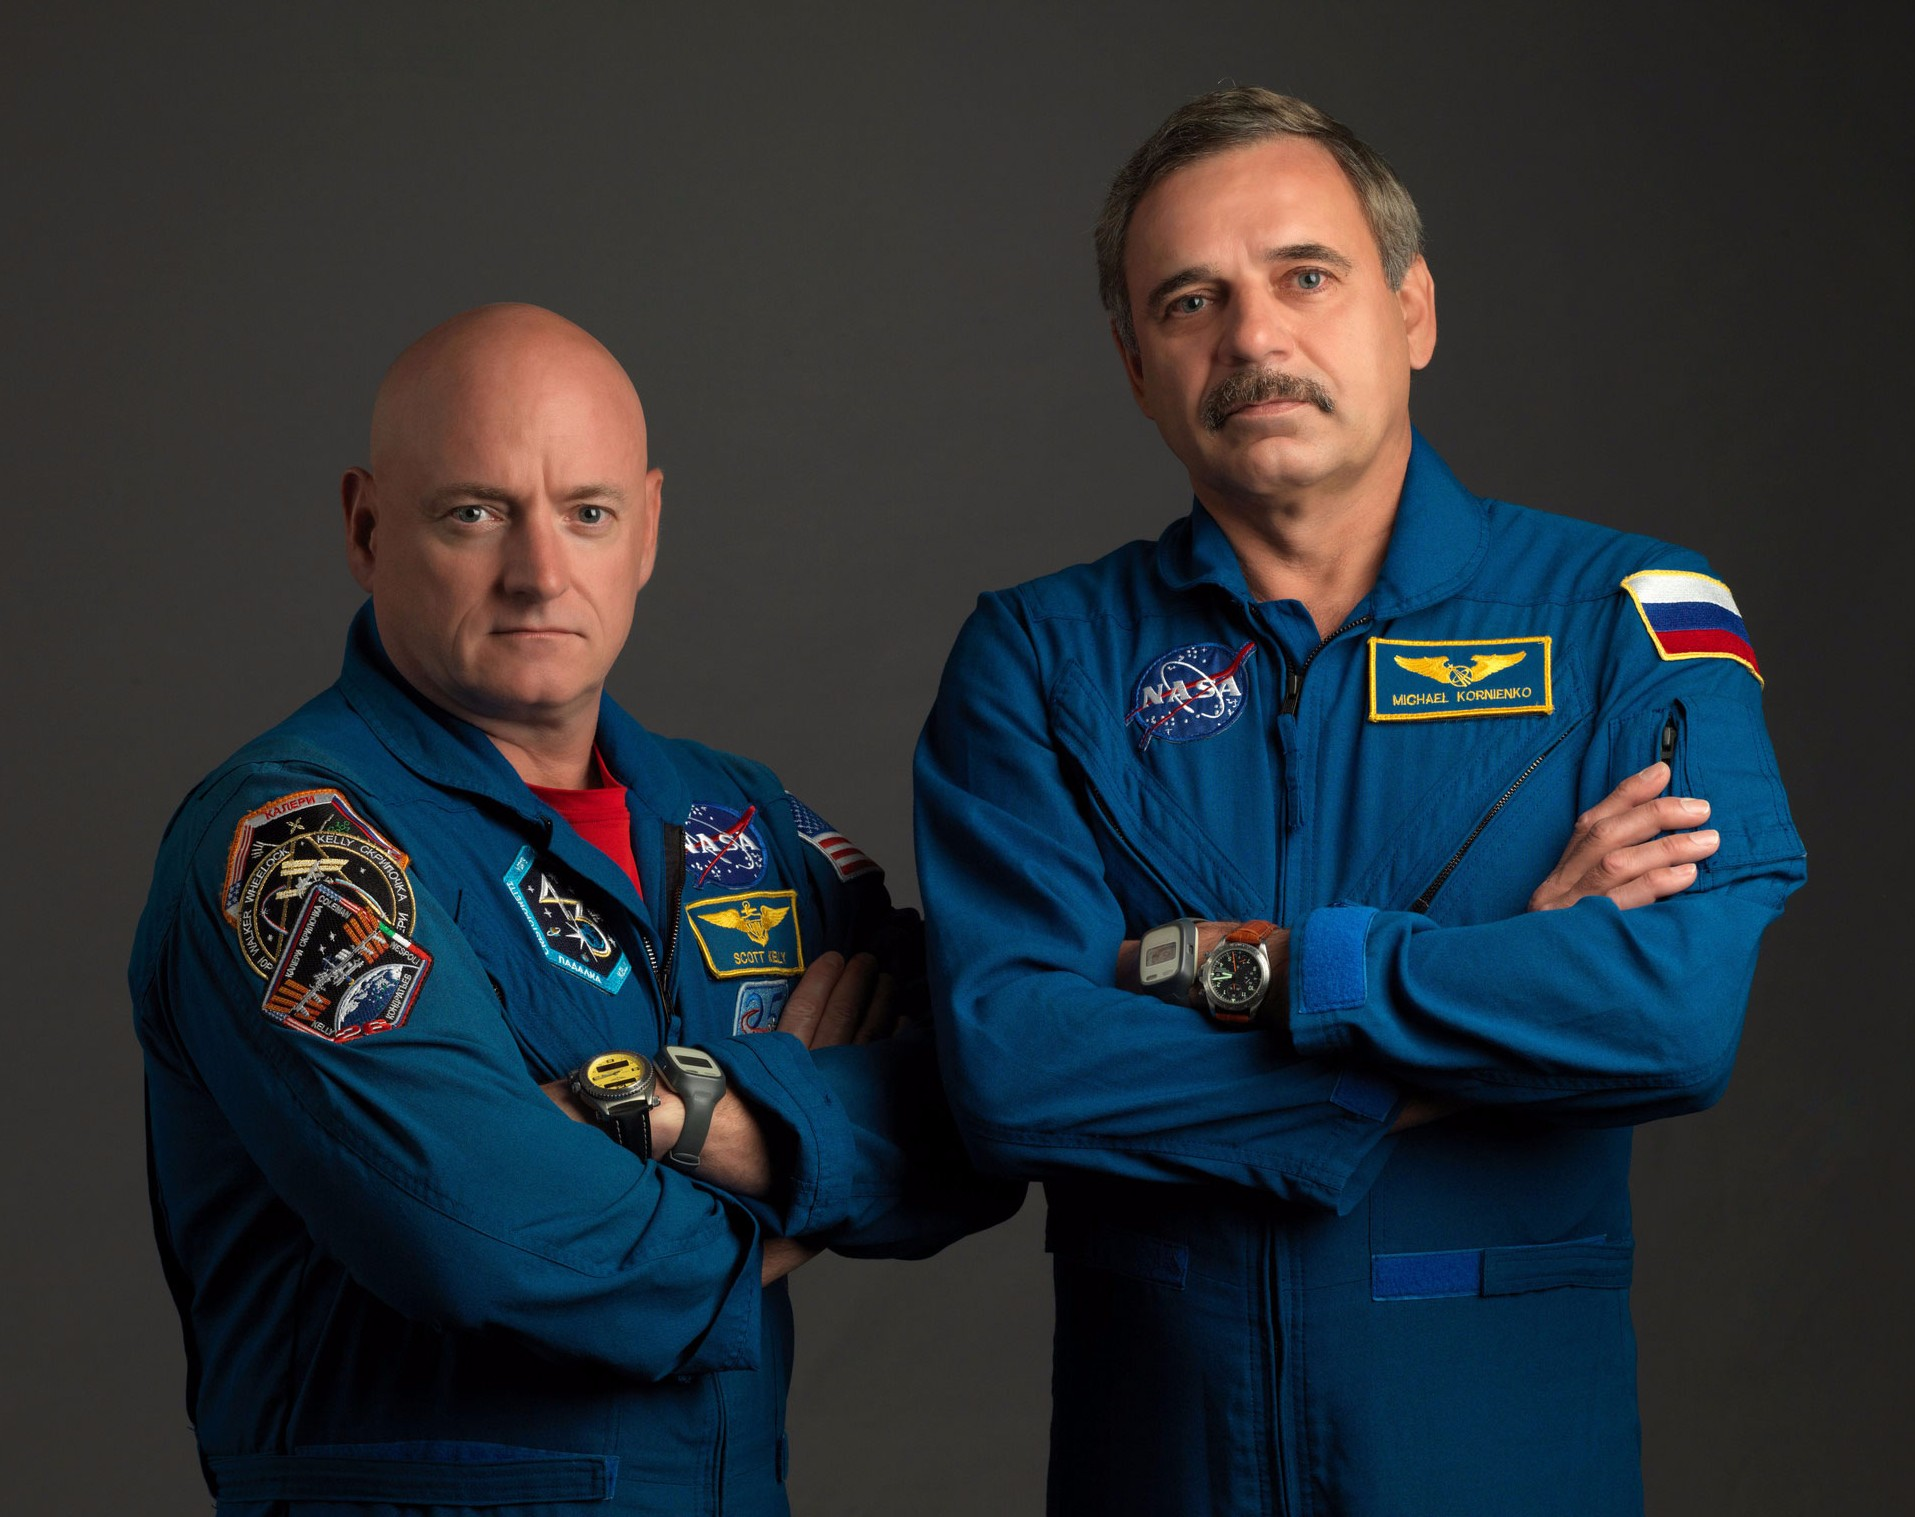 Scott Kelly (left) and Mikhail Kornienko (right) will spend 342 days in space. (Image credit: NASA/Bill Stafford).